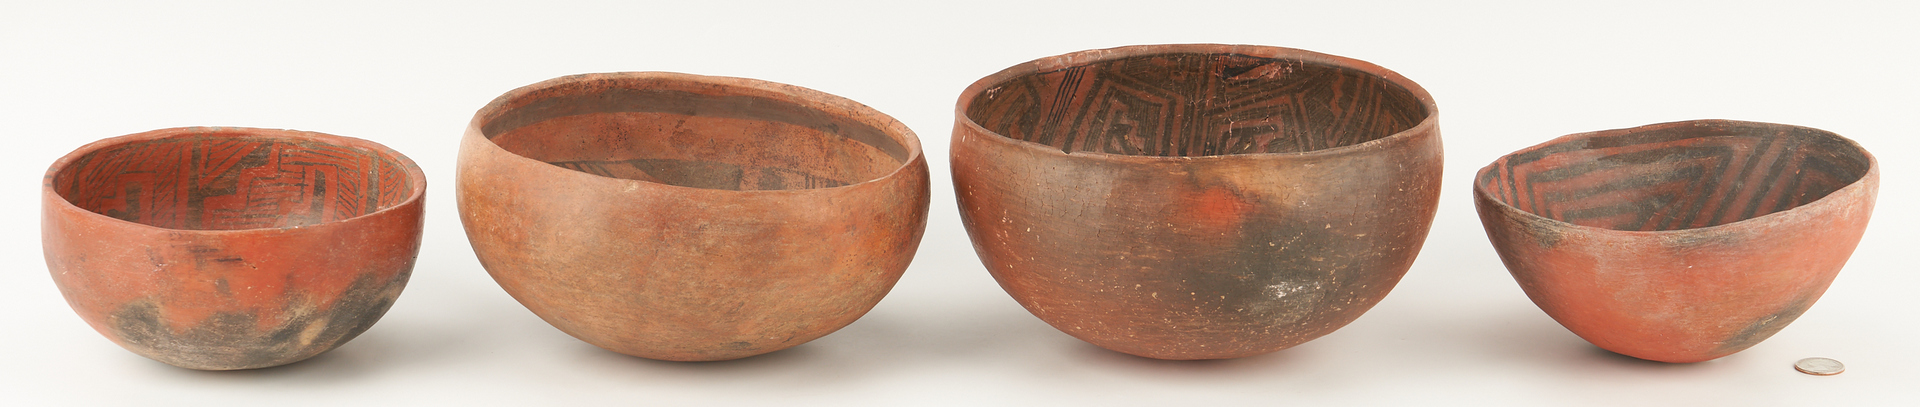 Lot 679: 4 Anasazi Culture Black on Red Pottery Bowls